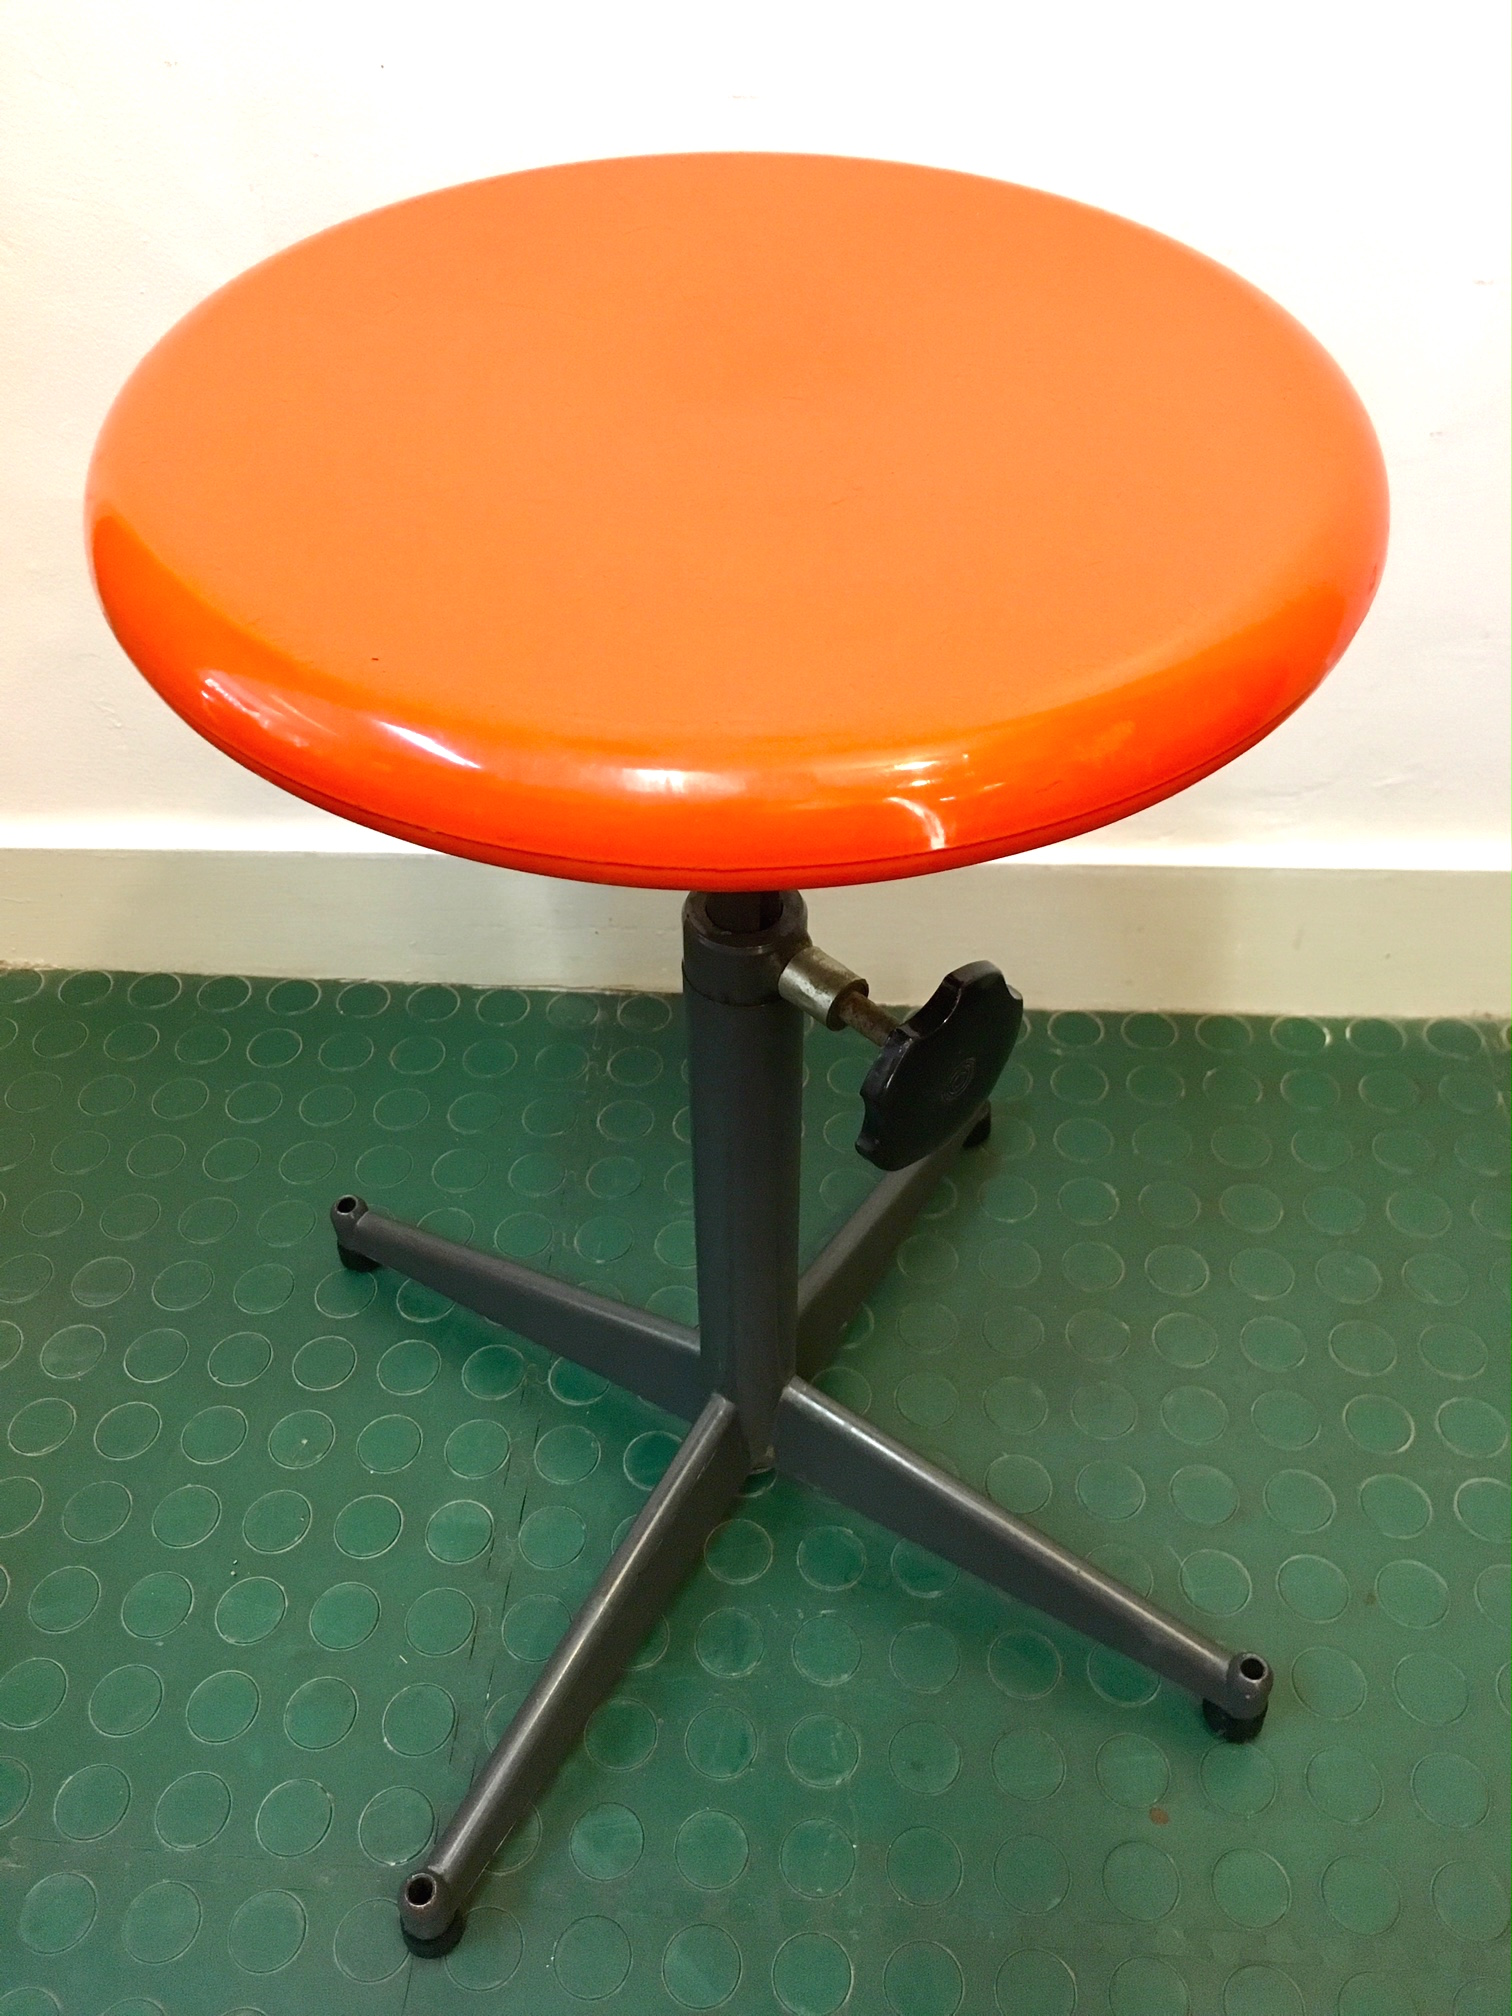 Tabourets Industriel Tabouret Haut Industriel Vintage Orange Brocnshop